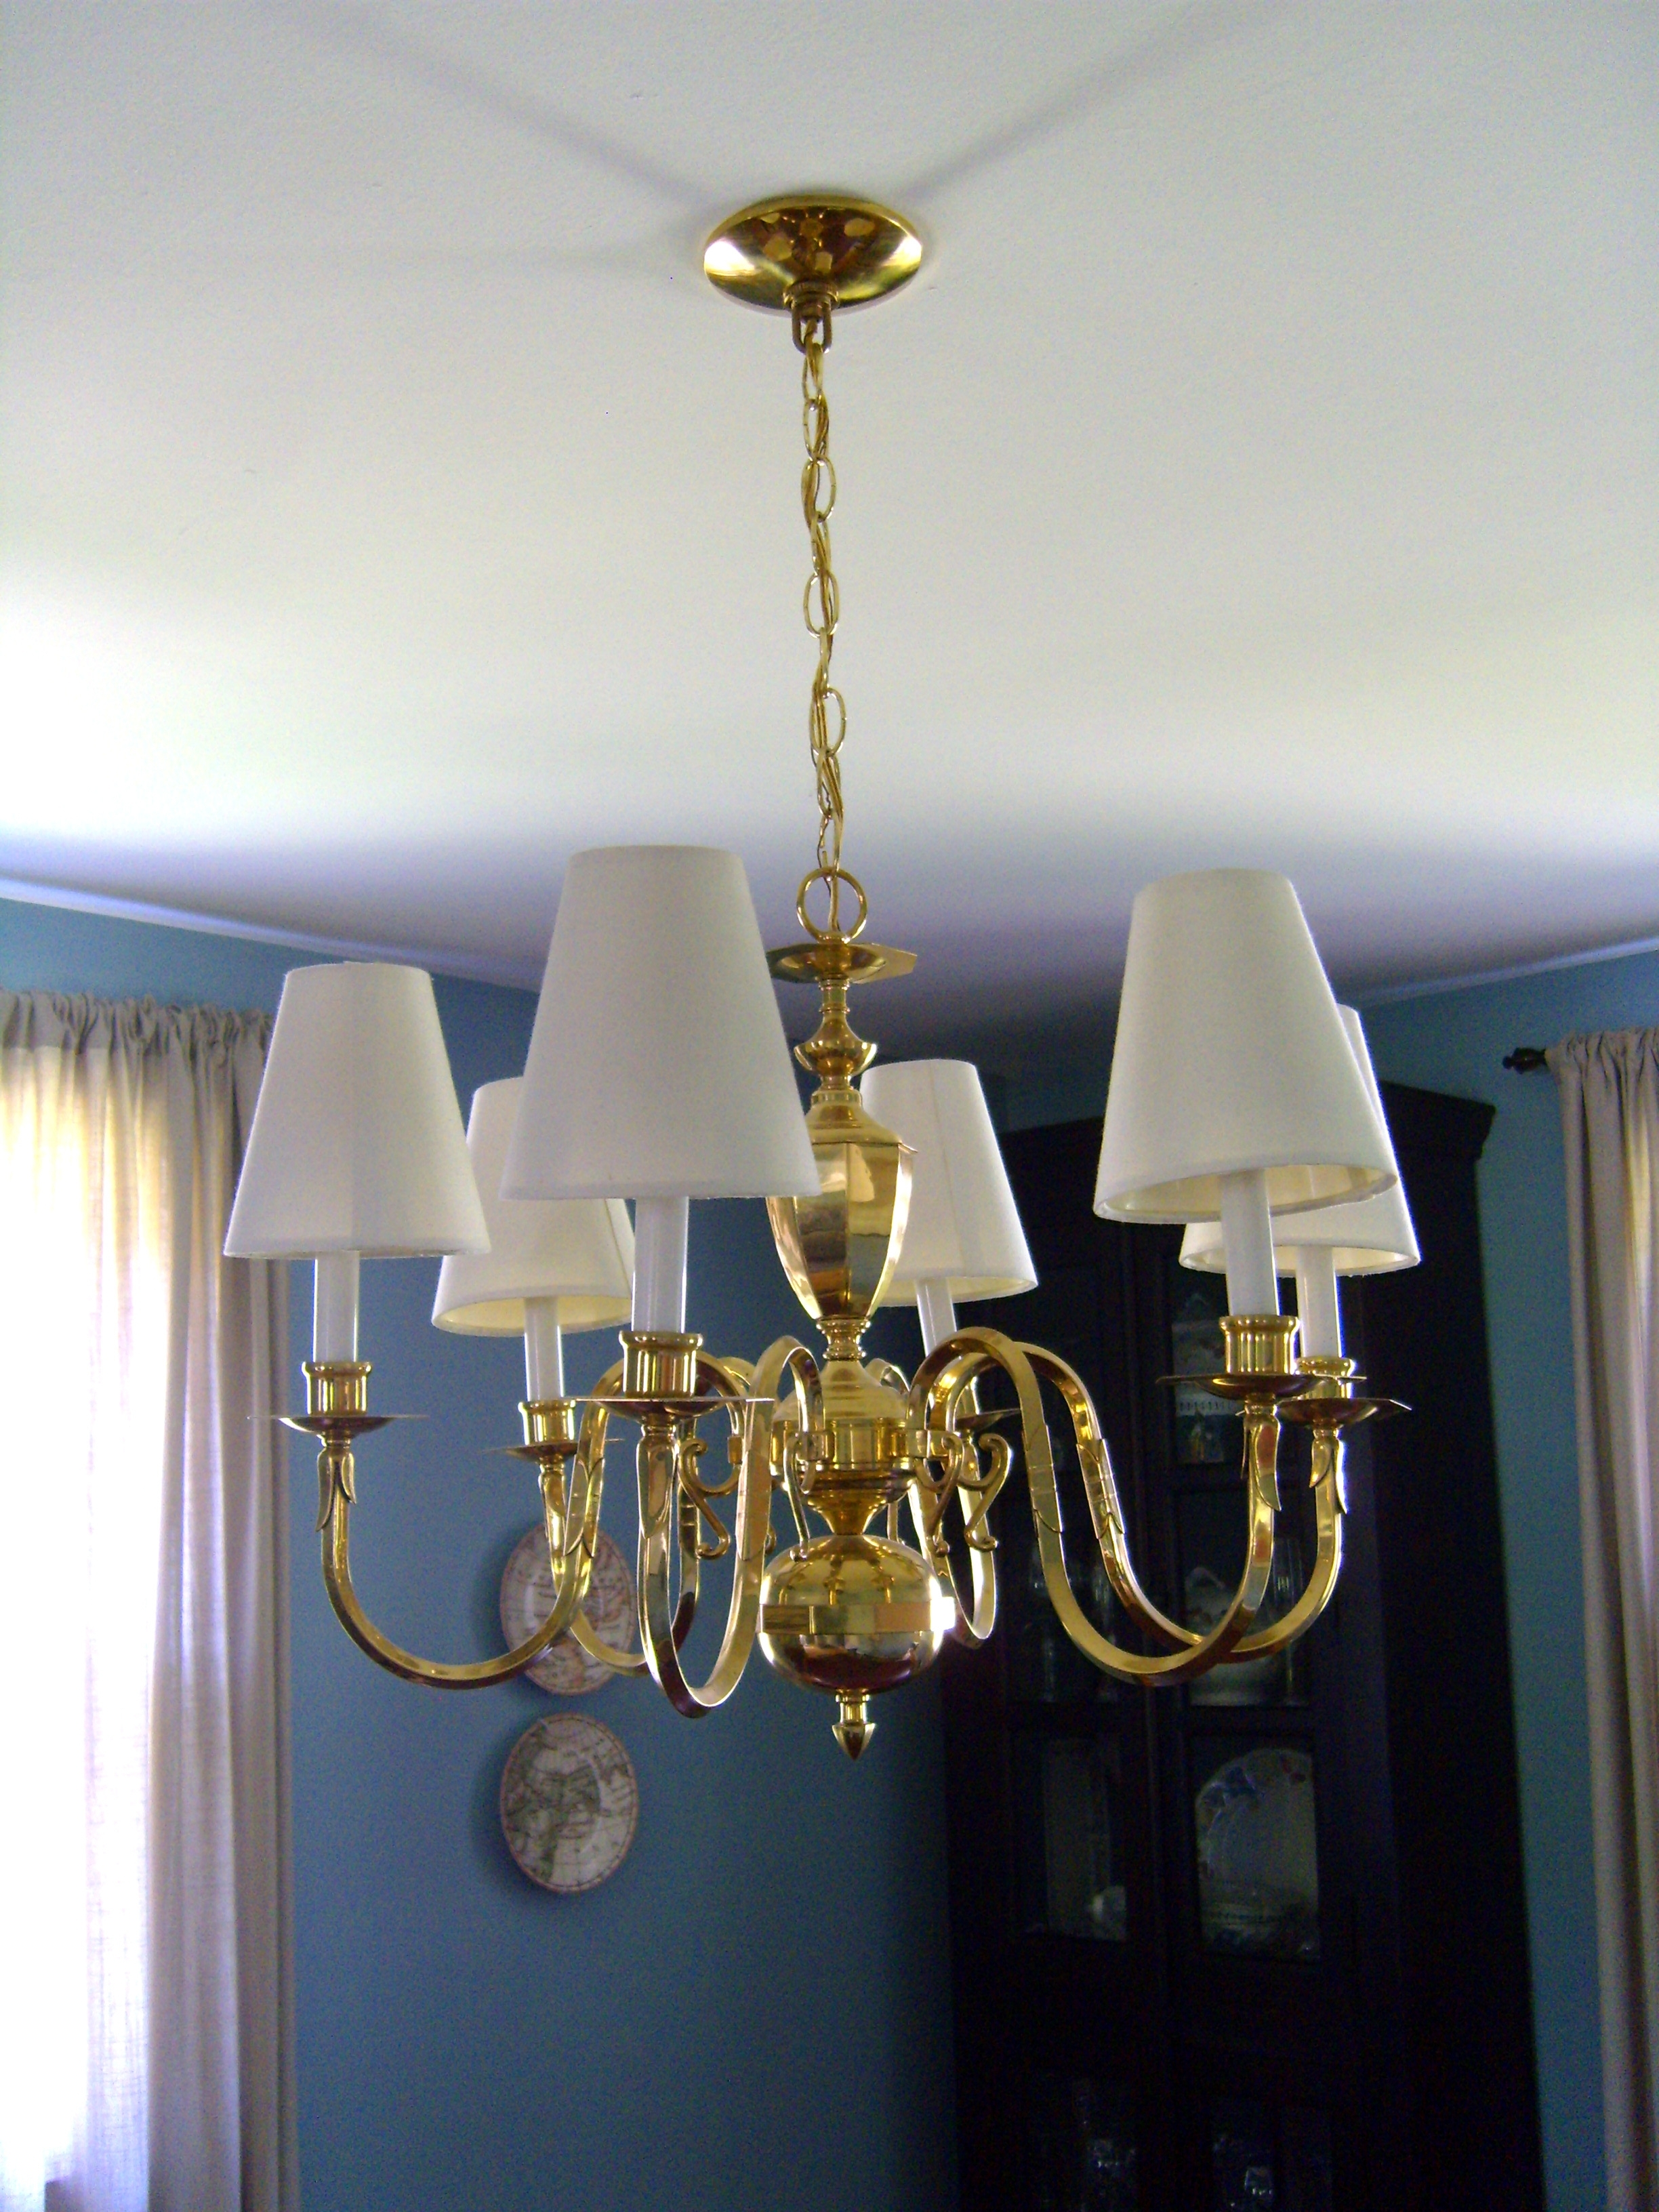 Chandelier Lampshades With Regard To Widely Used Furniture : Small Drum Lamp Shades Chandelier Saving Space Mini (View 10 of 20)